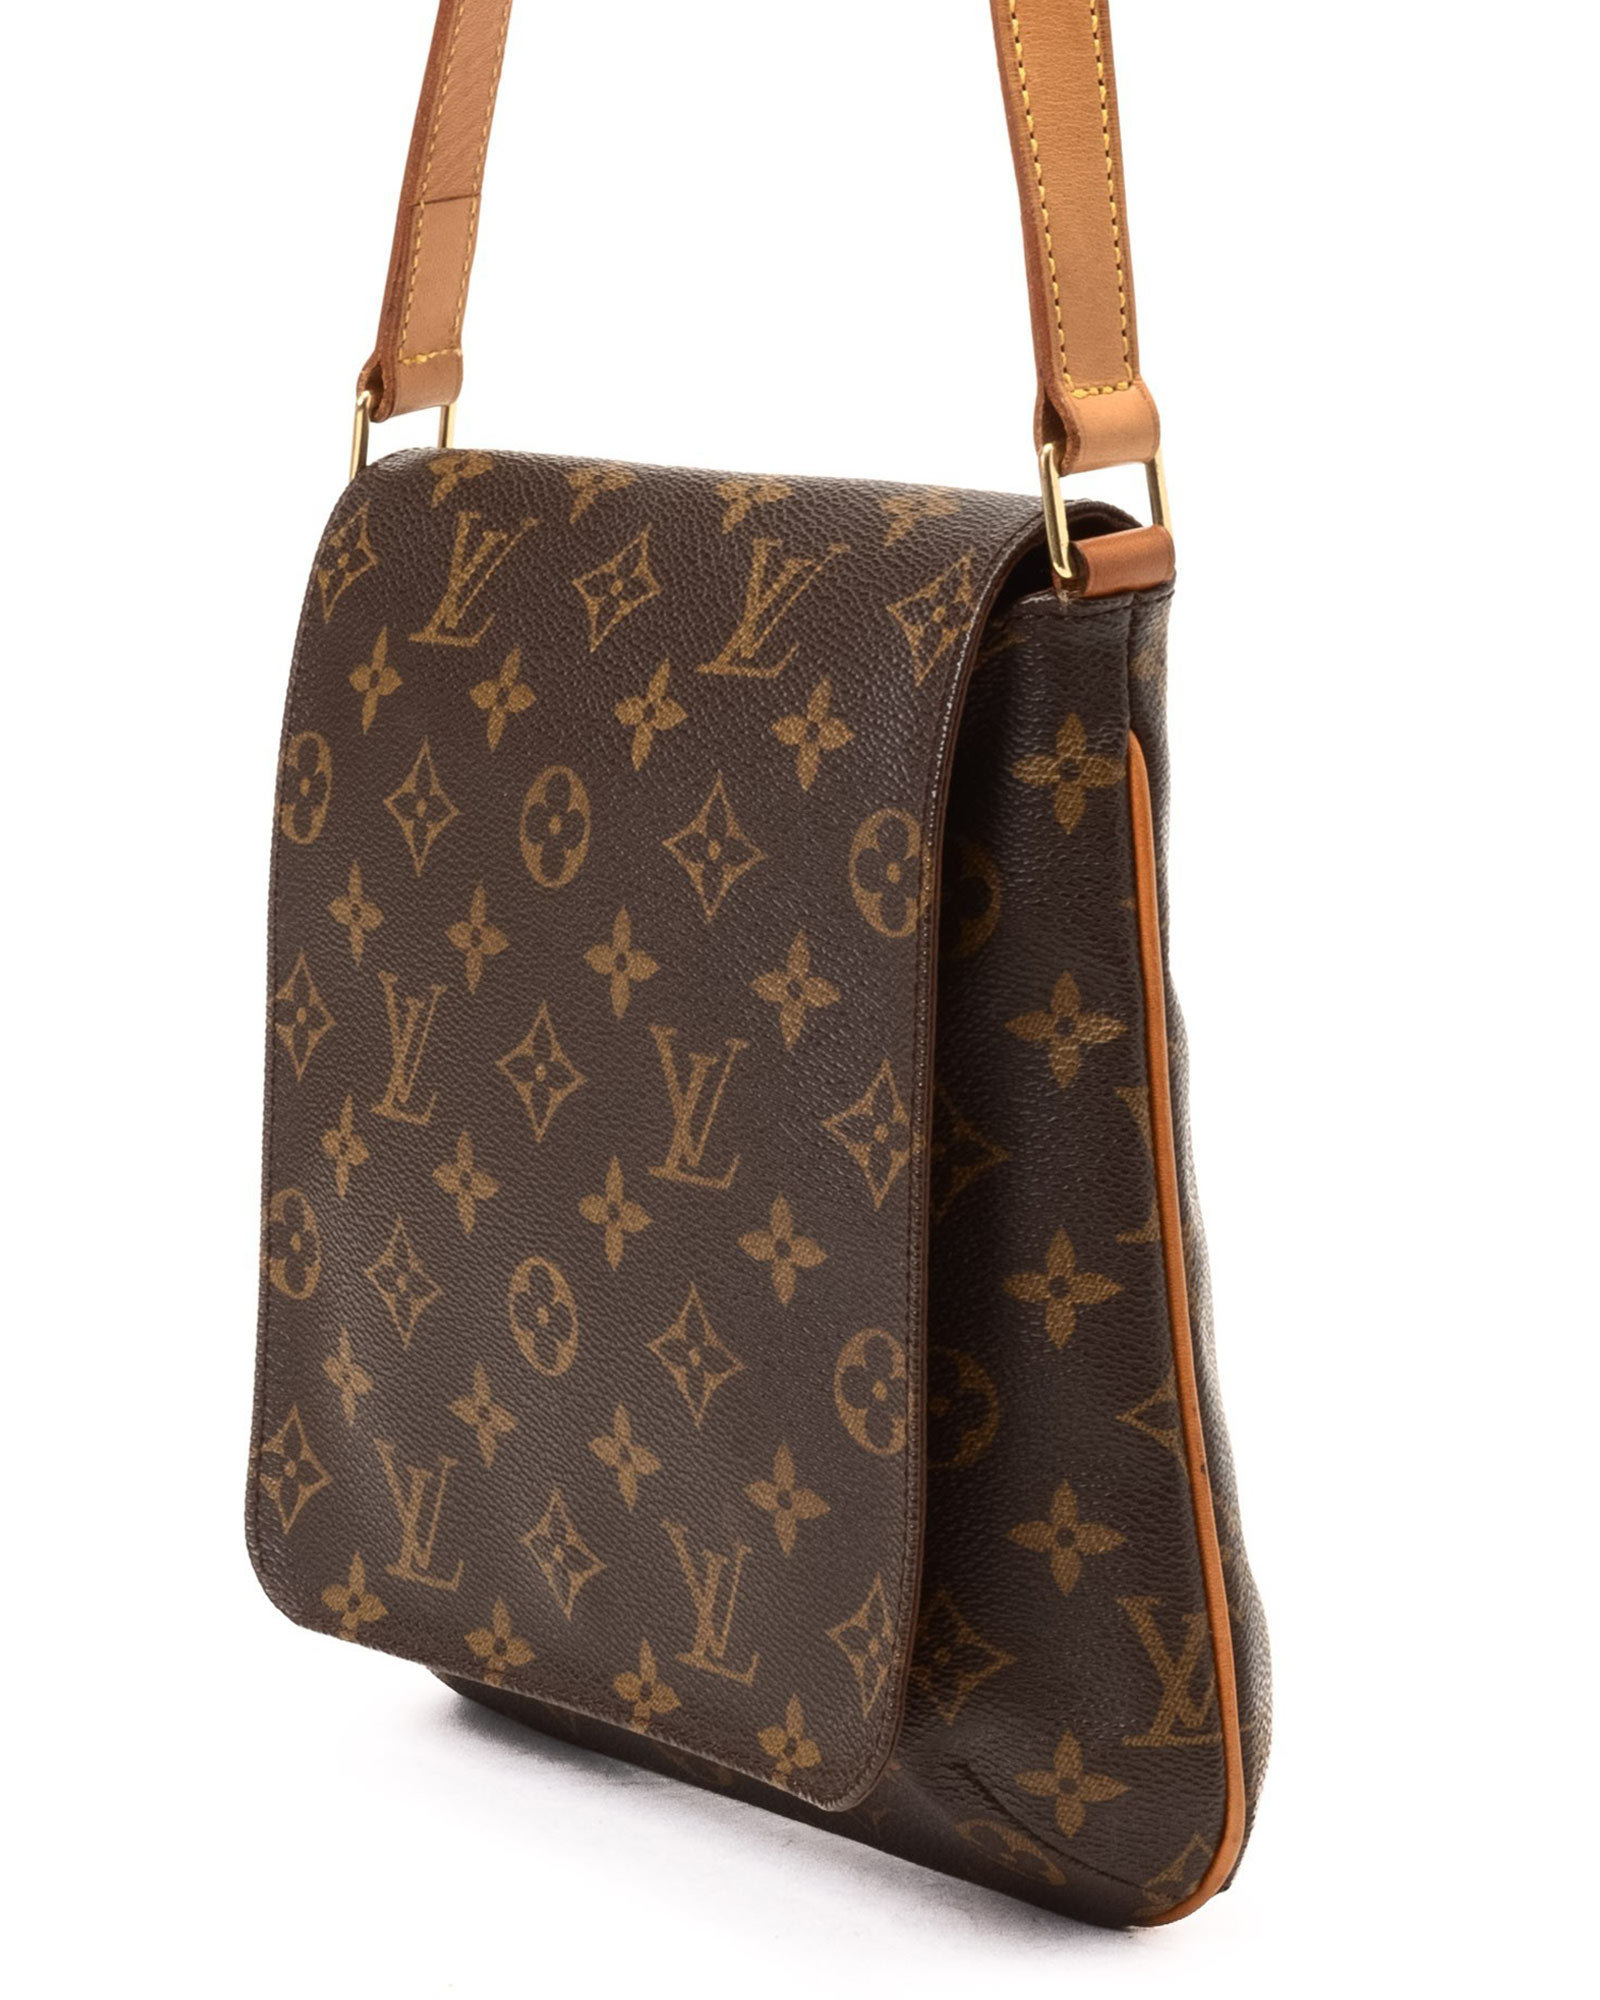 1a2ff9c74fad Lyst - Louis Vuitton Coated Canvas Shoulder Bag - Vintage in Brown